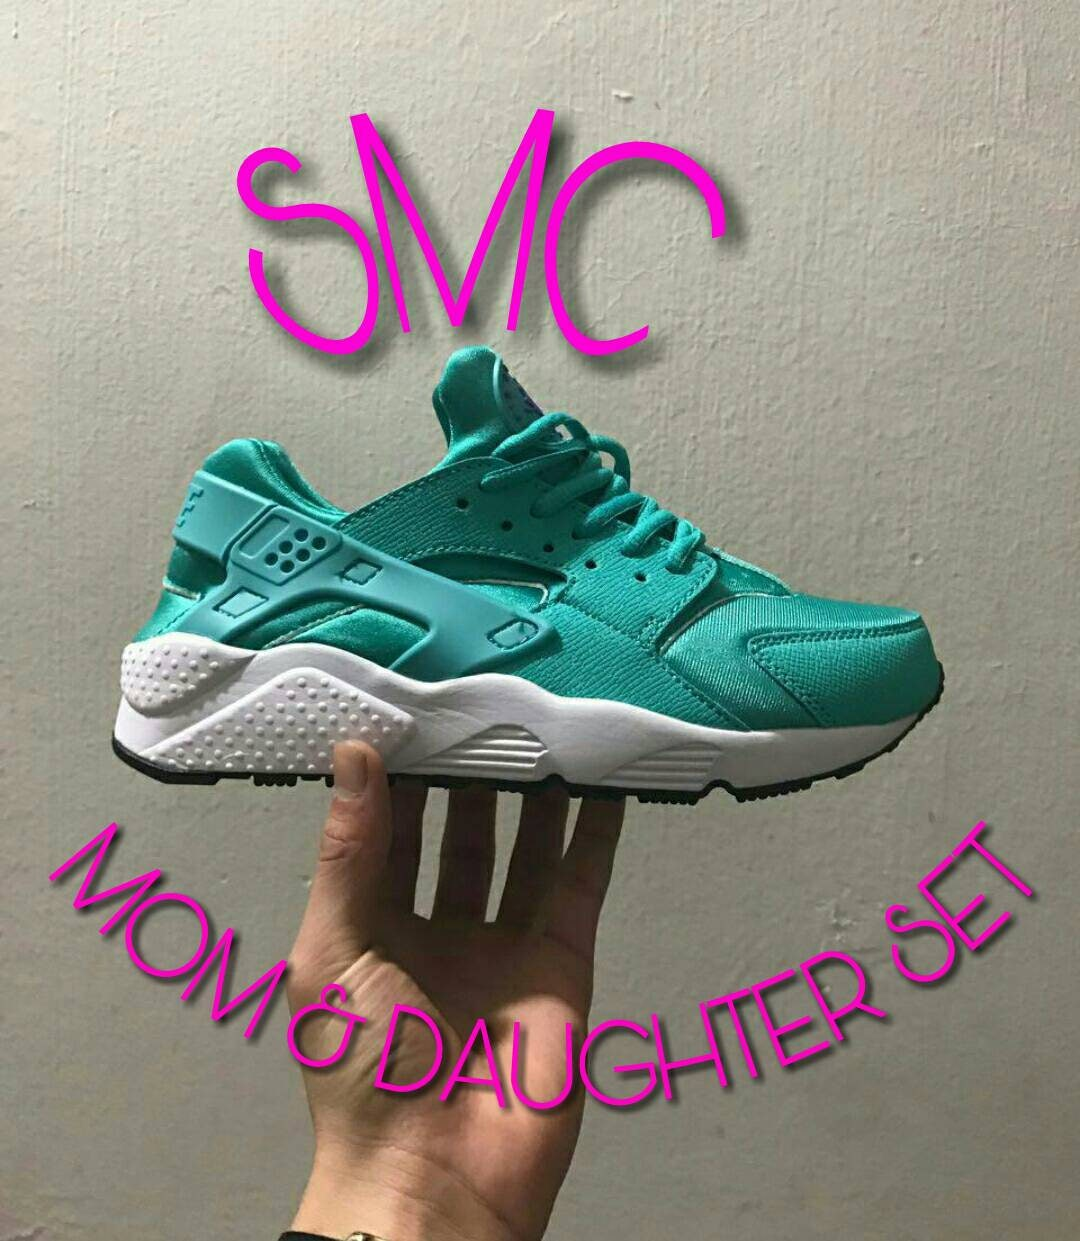 Custom Nike Air Huarache Nike Trainers Authentic Shoes Customized Sneakers Runners Womens Painted Trainers